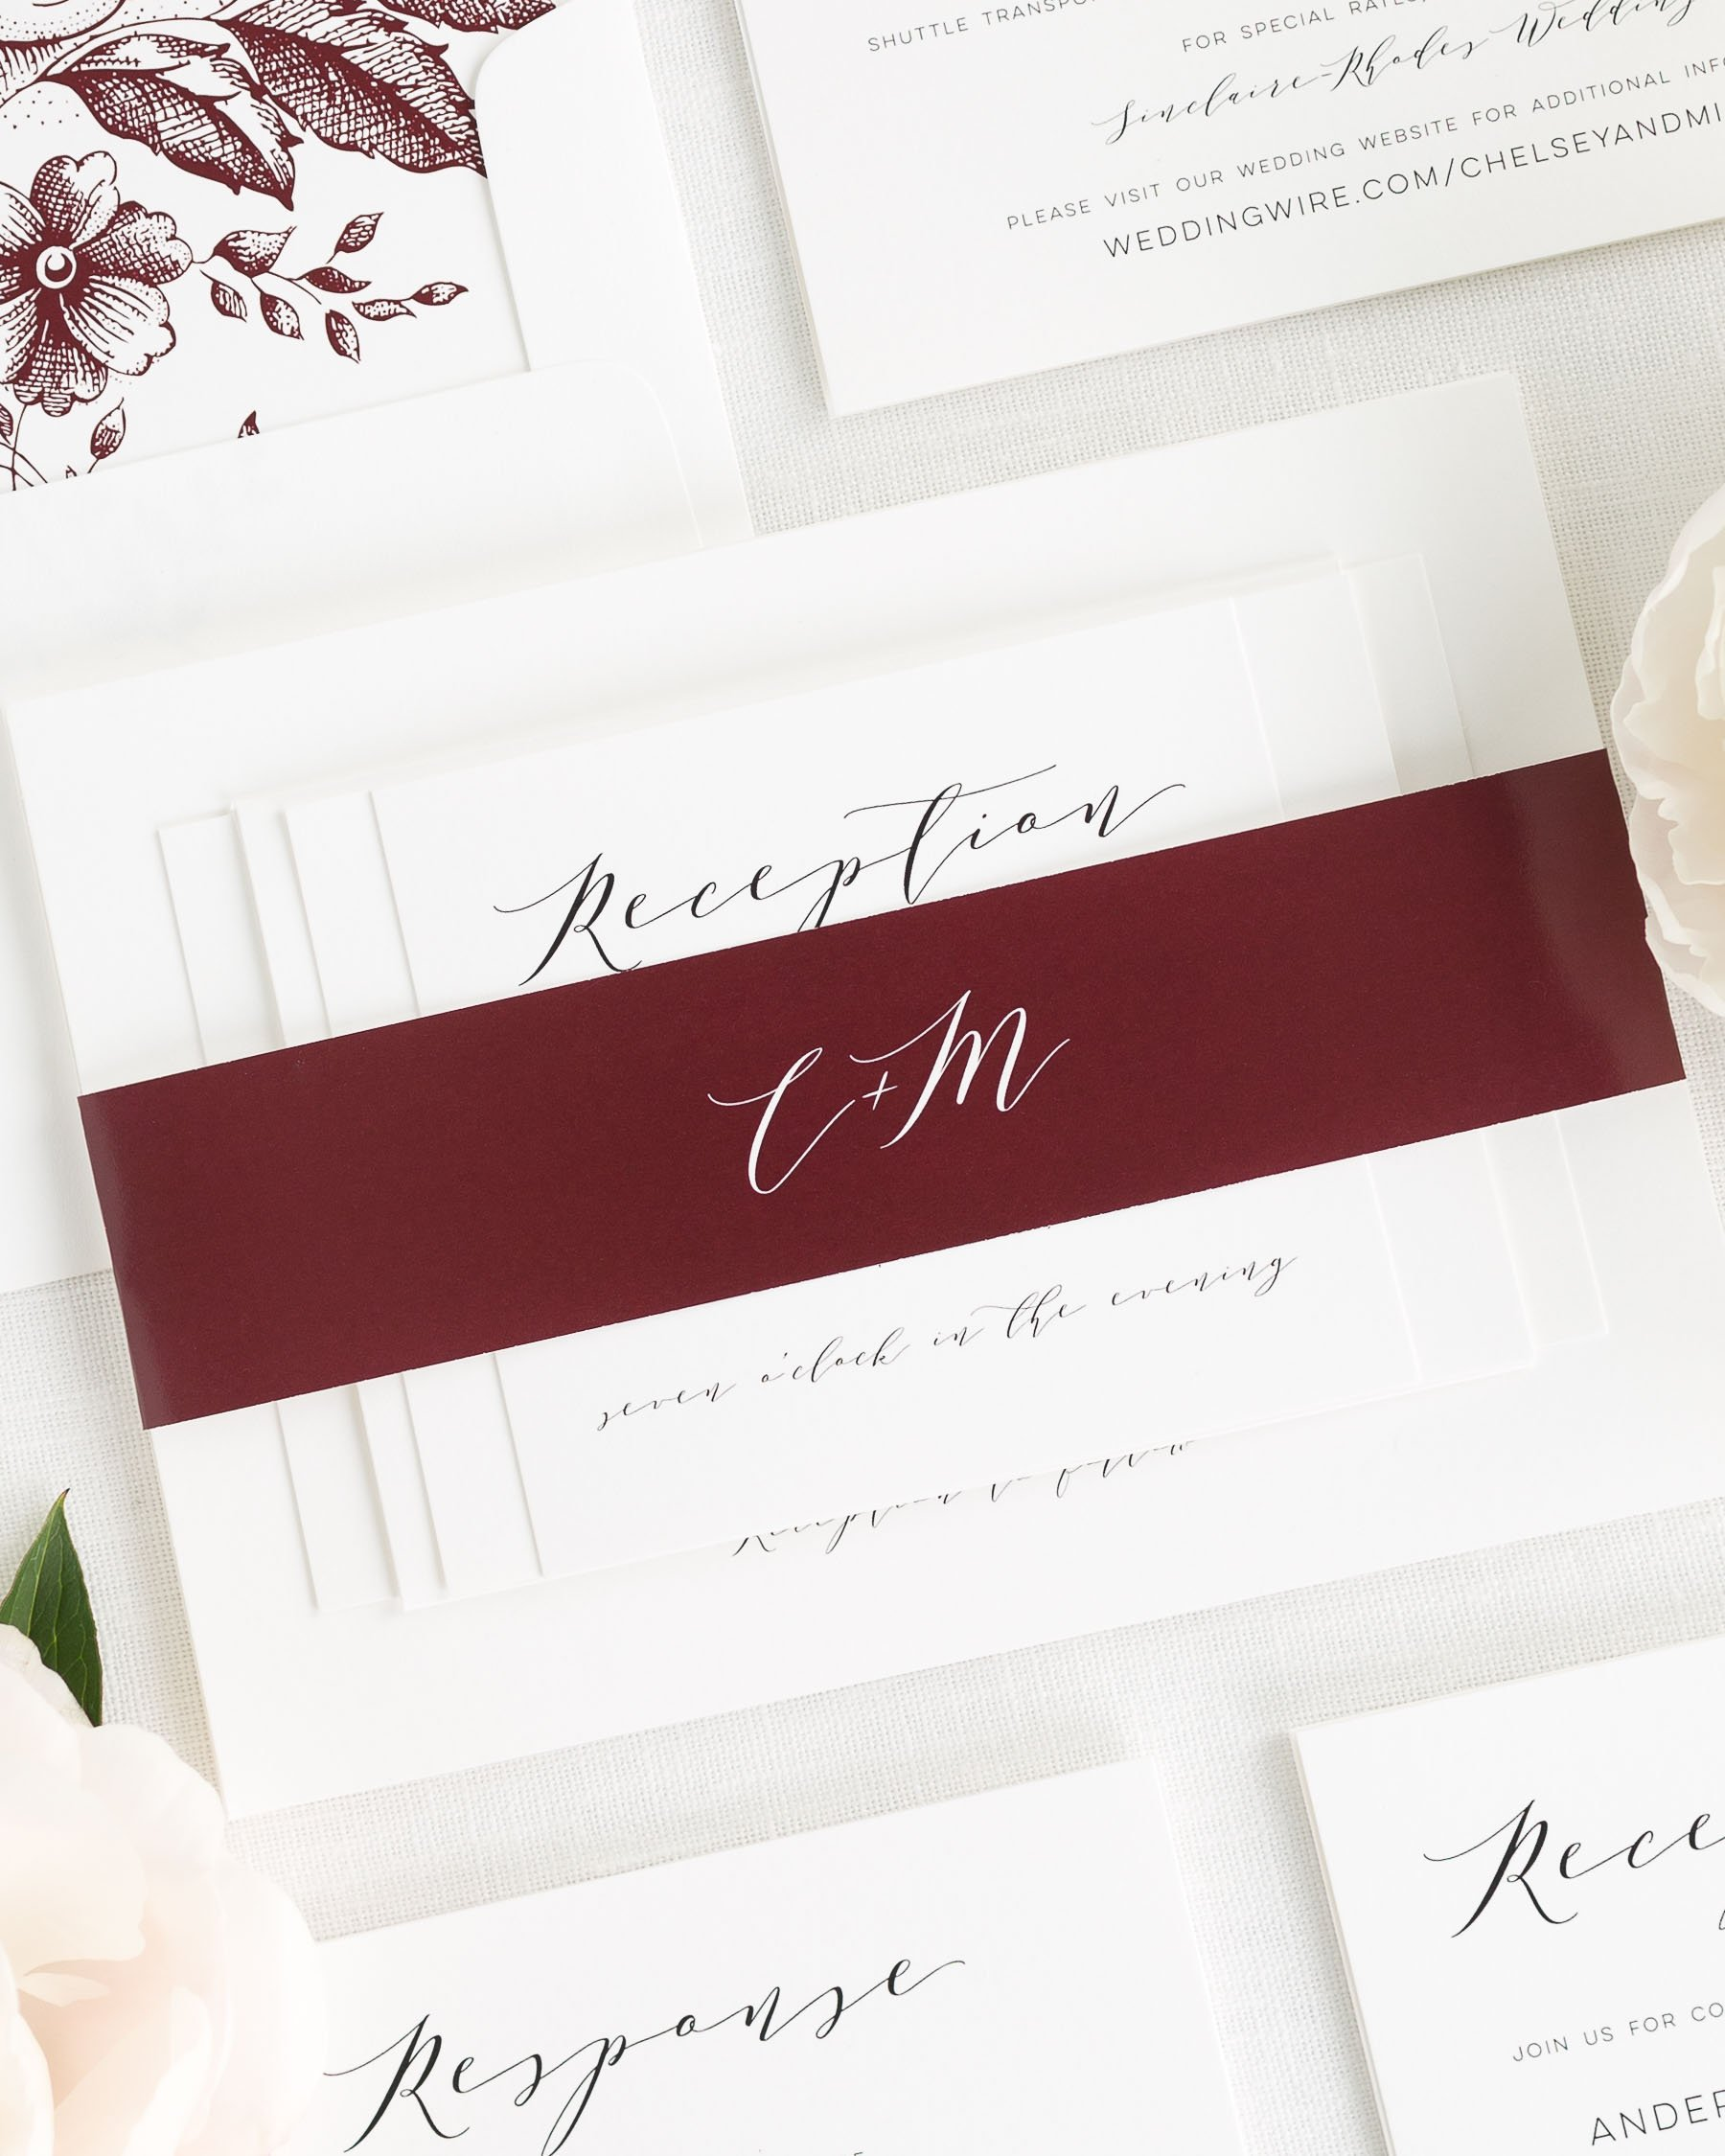 Dramatic Romance Wedding Invitations - Wedding Invitations by Shine